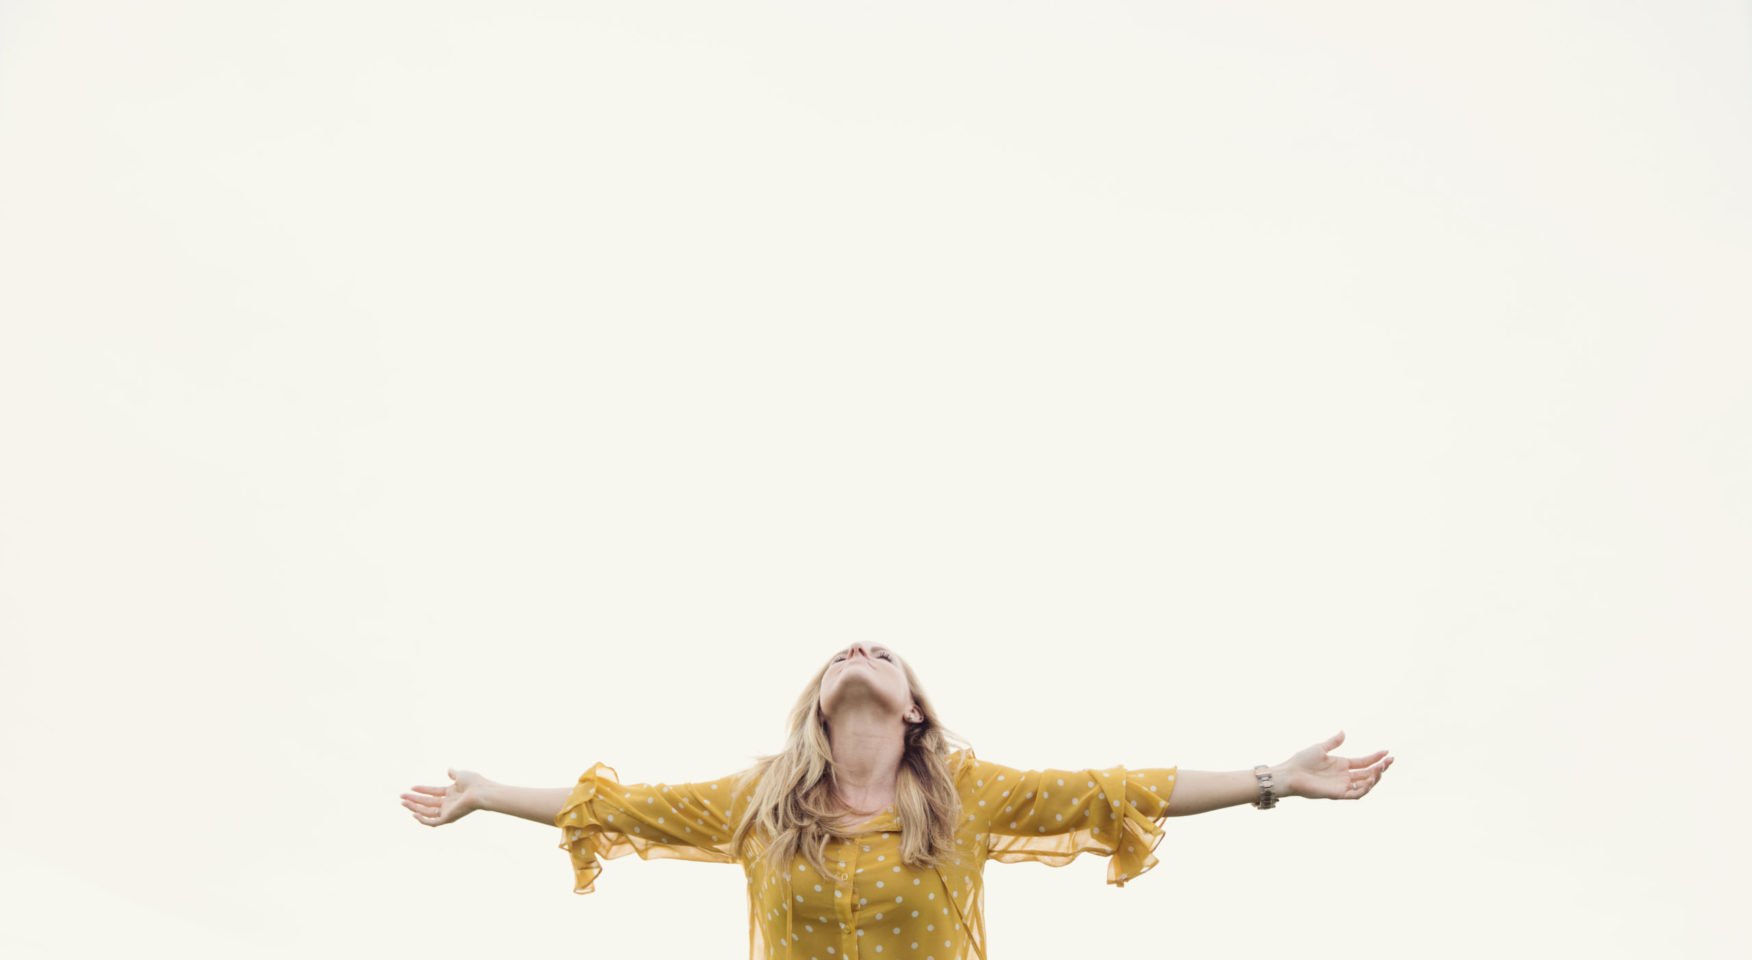 Woman in yellow shirt with open arms